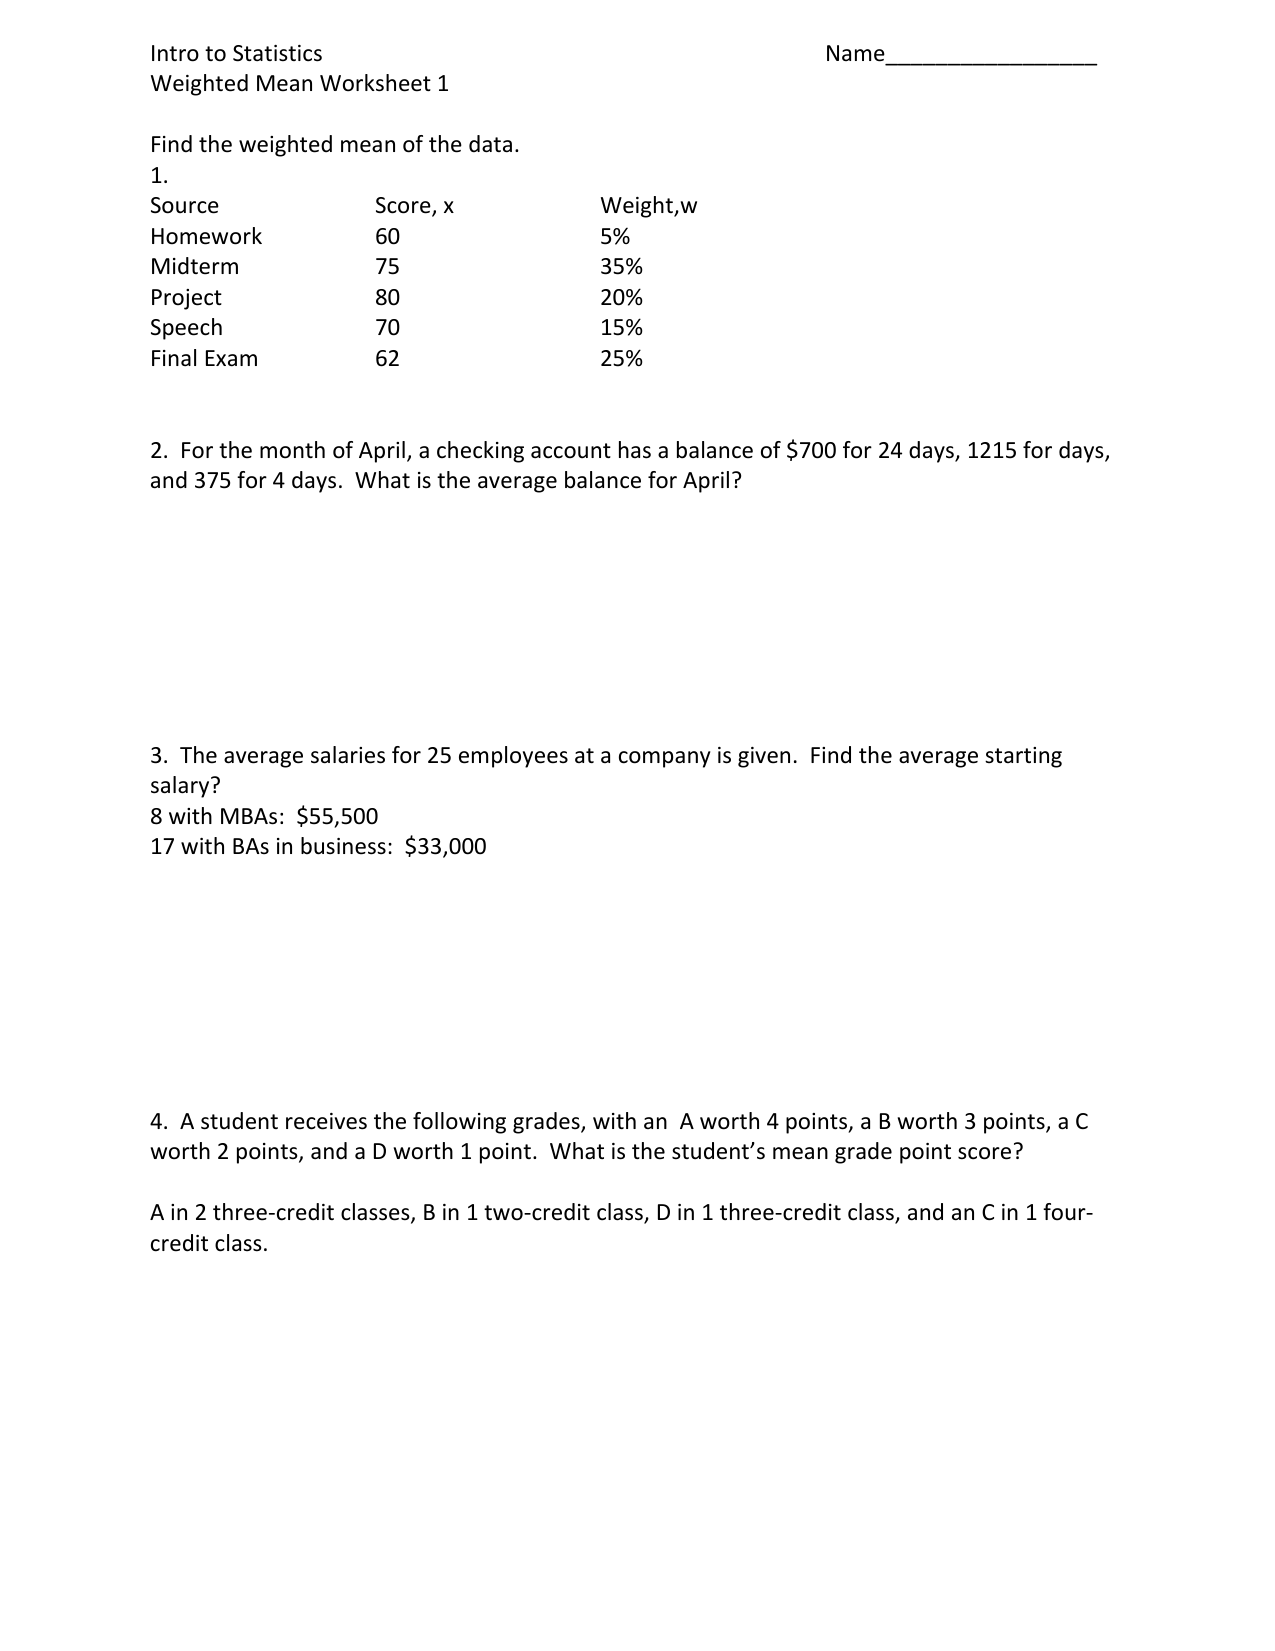 Weighted Means Worksheet 1